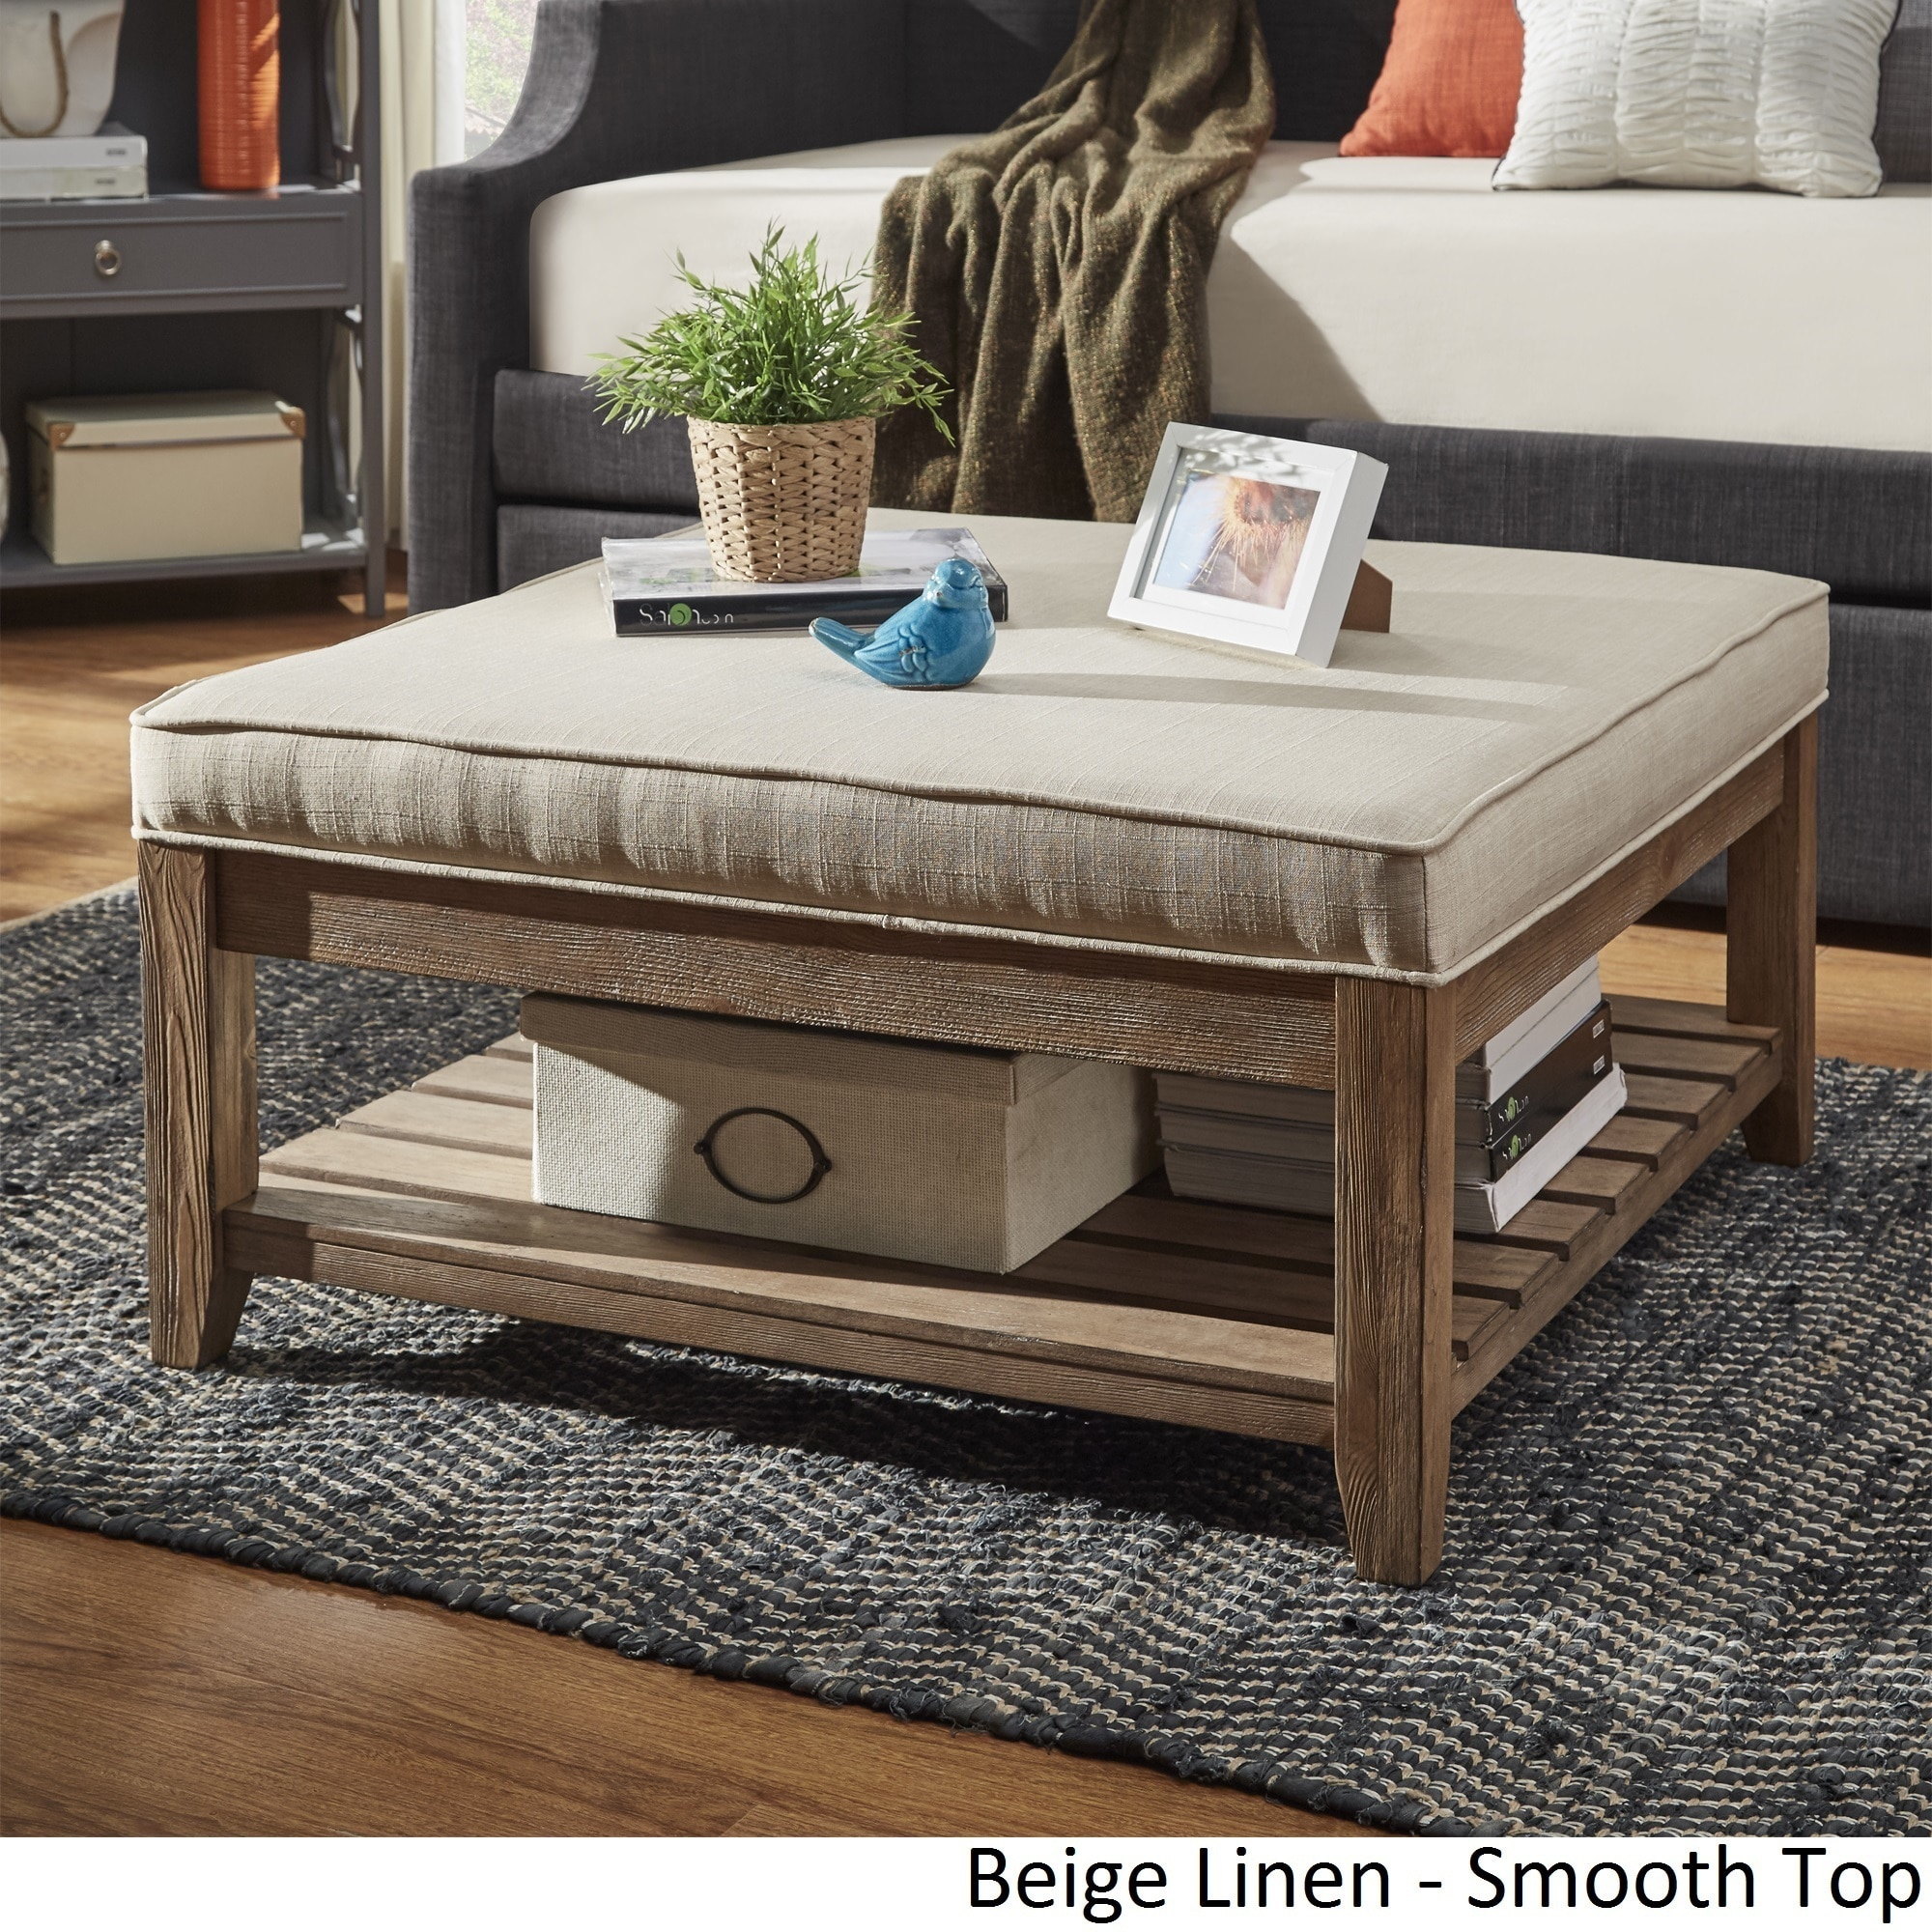 Cool Details About Lennon Pine Planked Storage Ottoman Coffee Table By Inspire Gamerscity Chair Design For Home Gamerscityorg